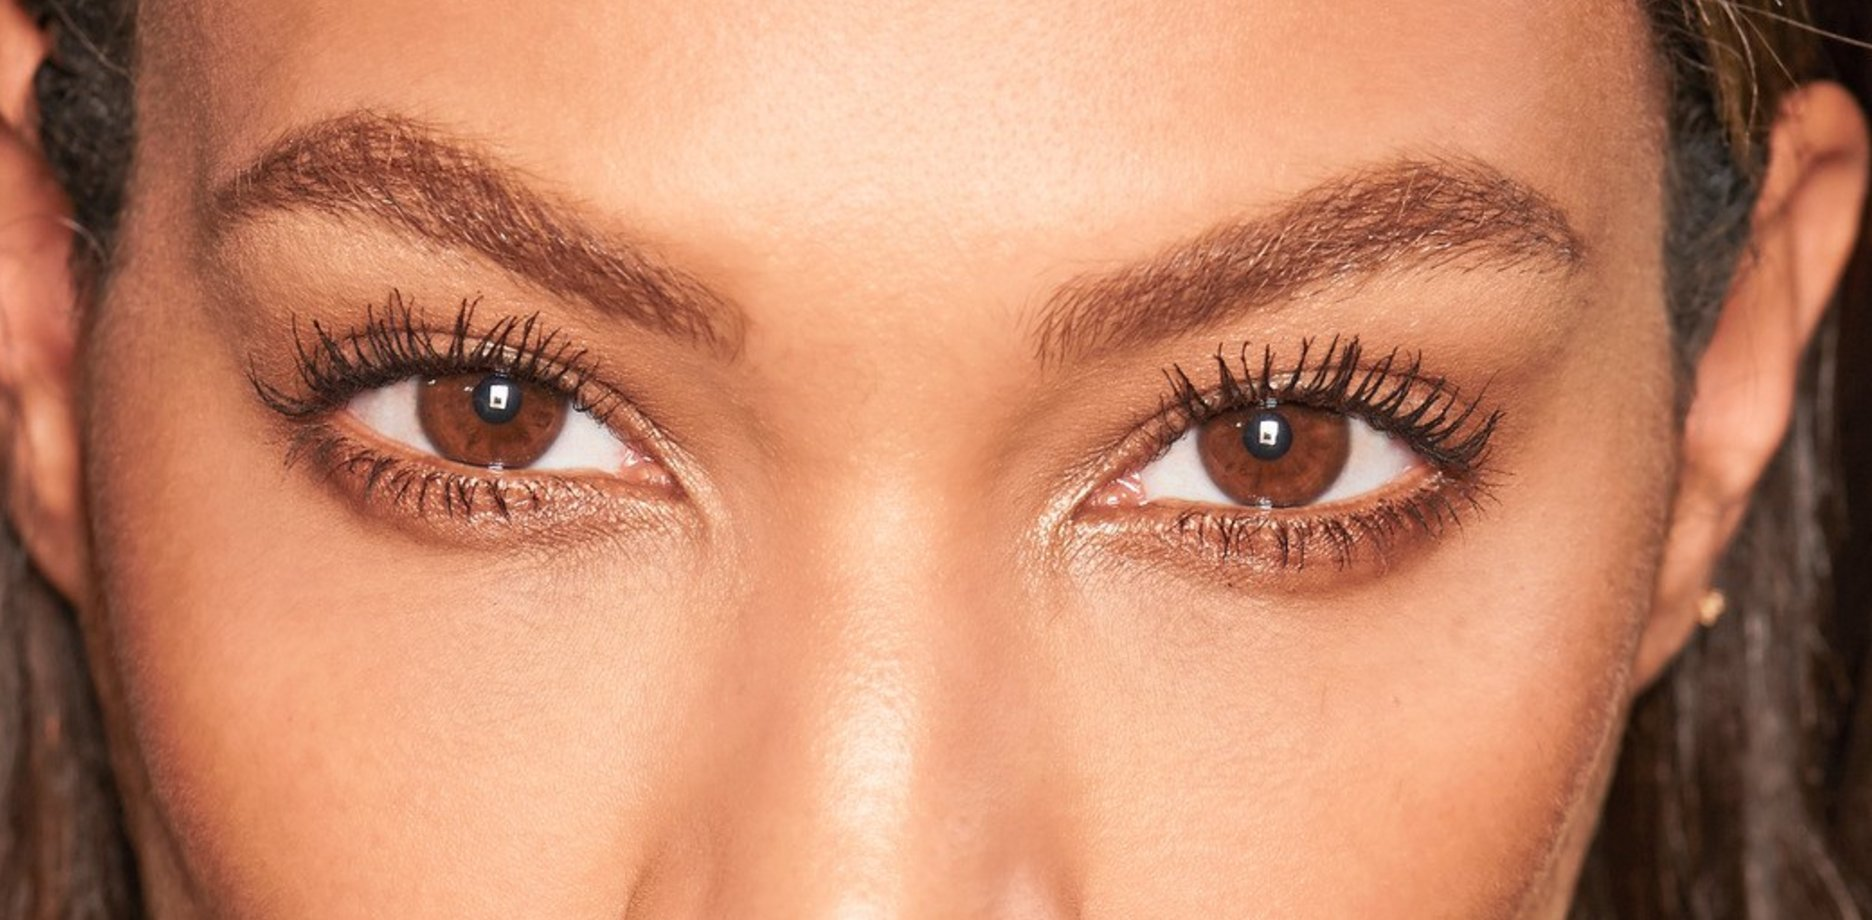 20 new mascaras that will give you incredible lashes: https://t.co/YcgAxjVbHr https://t.co/KOynYortkw